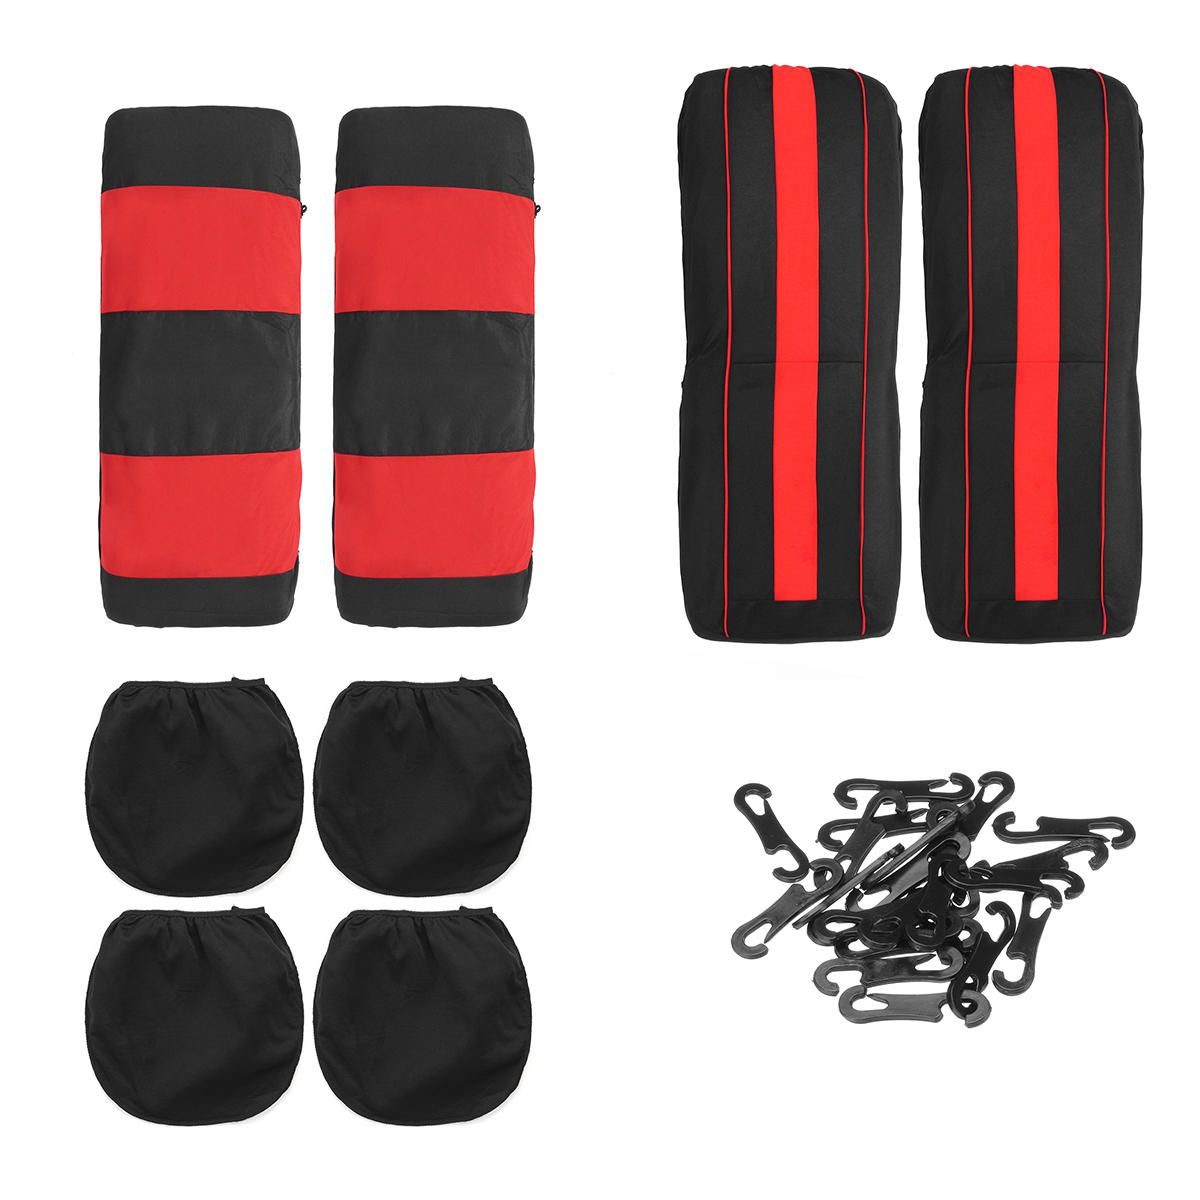 HEA US$28.87 8Pcs Polyester Fabric Car Front and Back Seat Cover Cushion Protector for Five Seats Car